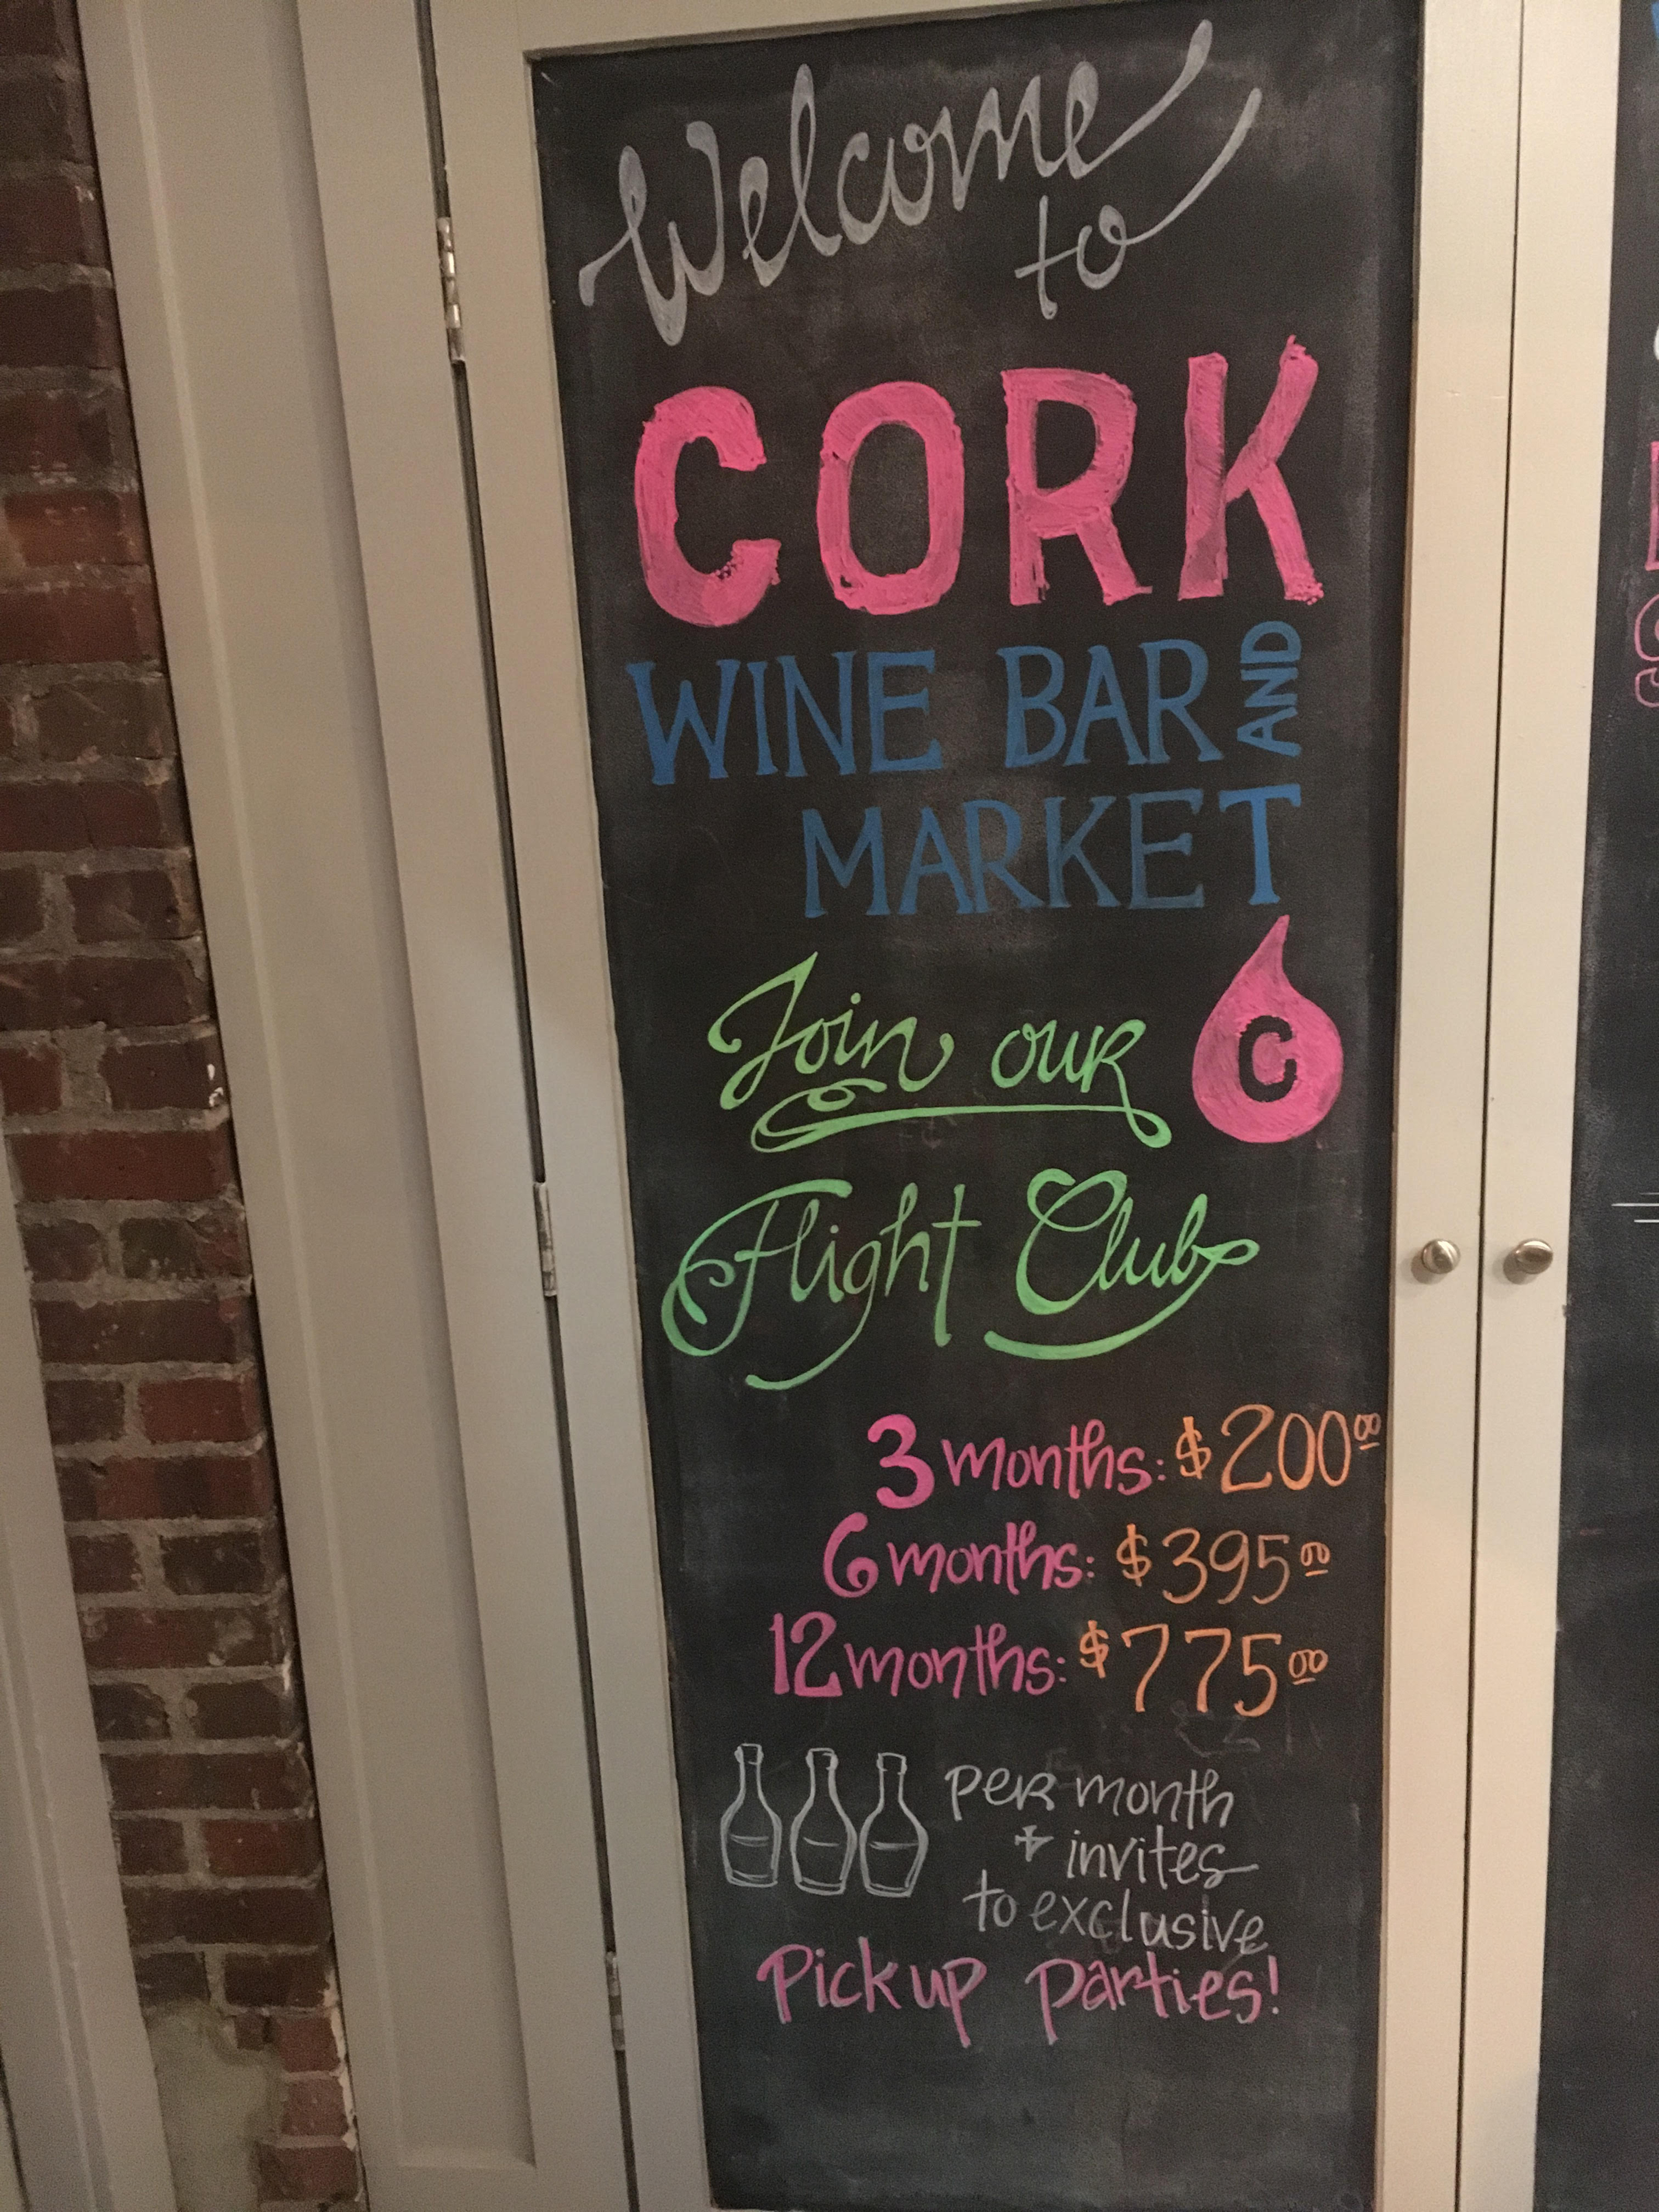 <p>Flight{&nbsp;}Club from Cork Market // Price: $200 for 3 month subscription{&nbsp;} (9 bottles), $395 for 6 months (18 bottles) , $775 for 12 months (36 bottles) // Sign up at the restaurant or by emailing FlightClub@CorkDC.com //{&nbsp;}www.corkdc.com // (Image: Cork Market)</p>